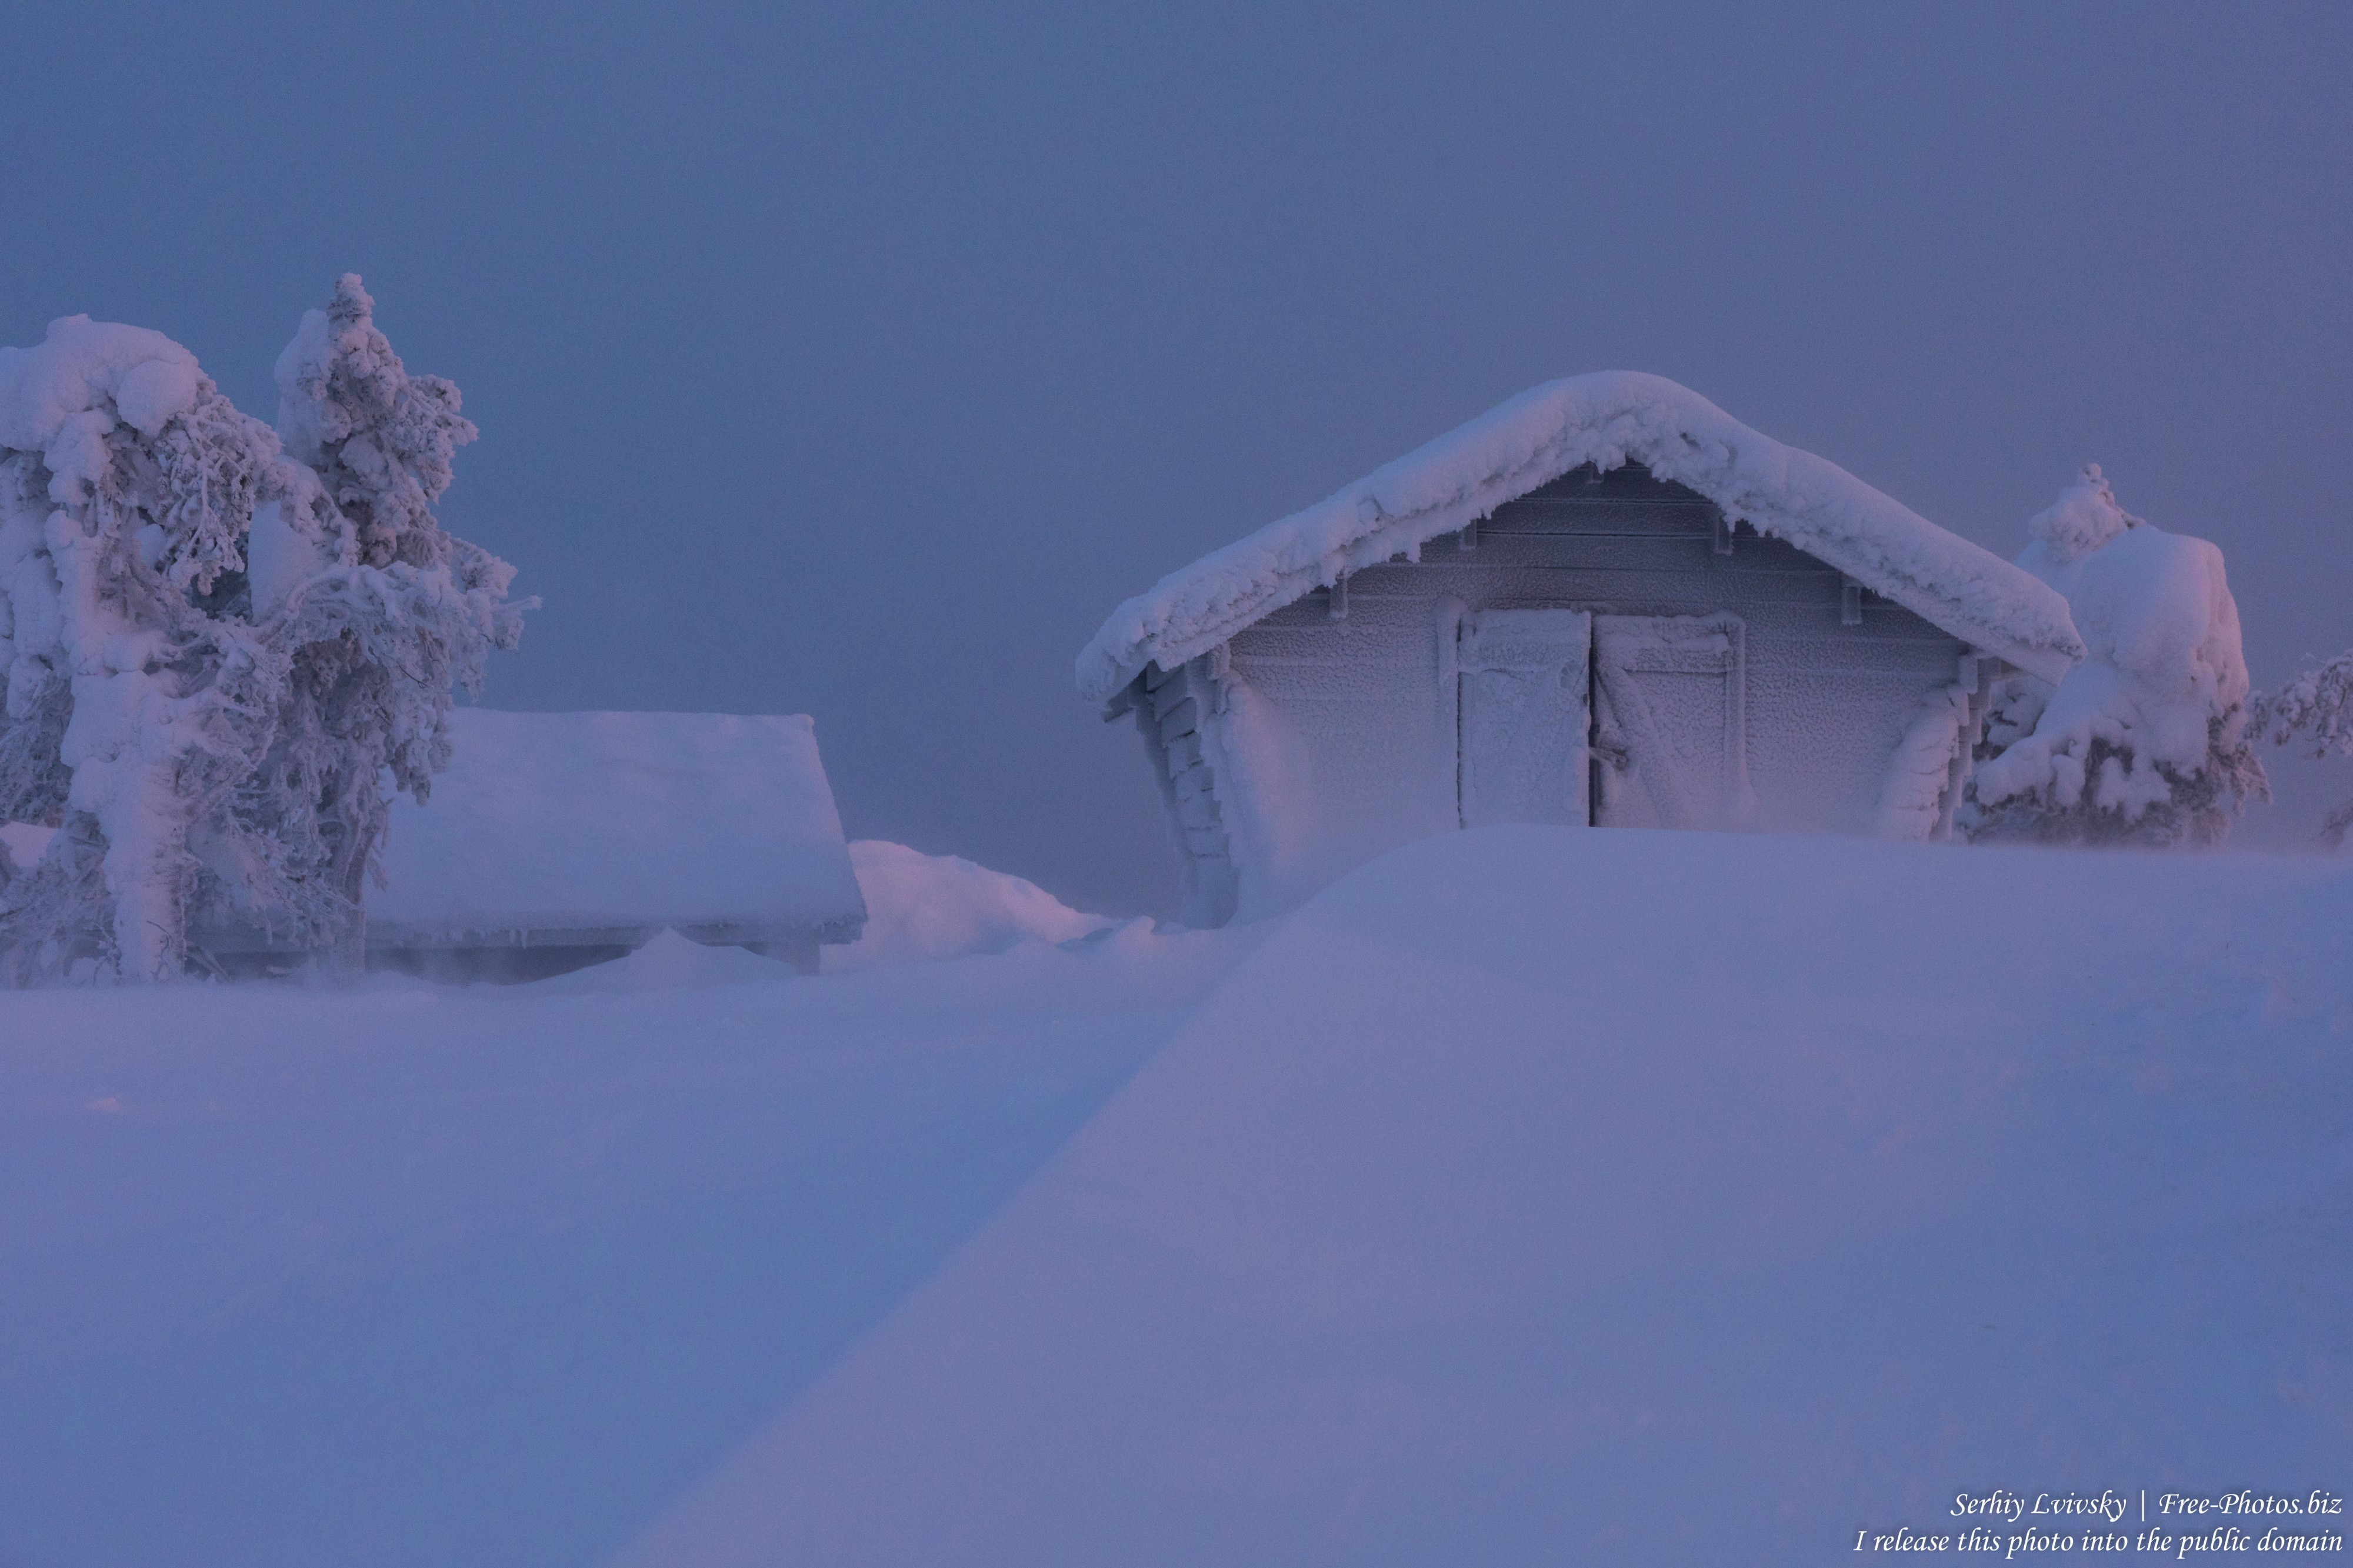 Ruka, Finland, photographed in January 2020 by Serhiy Lvivsky, picture 7